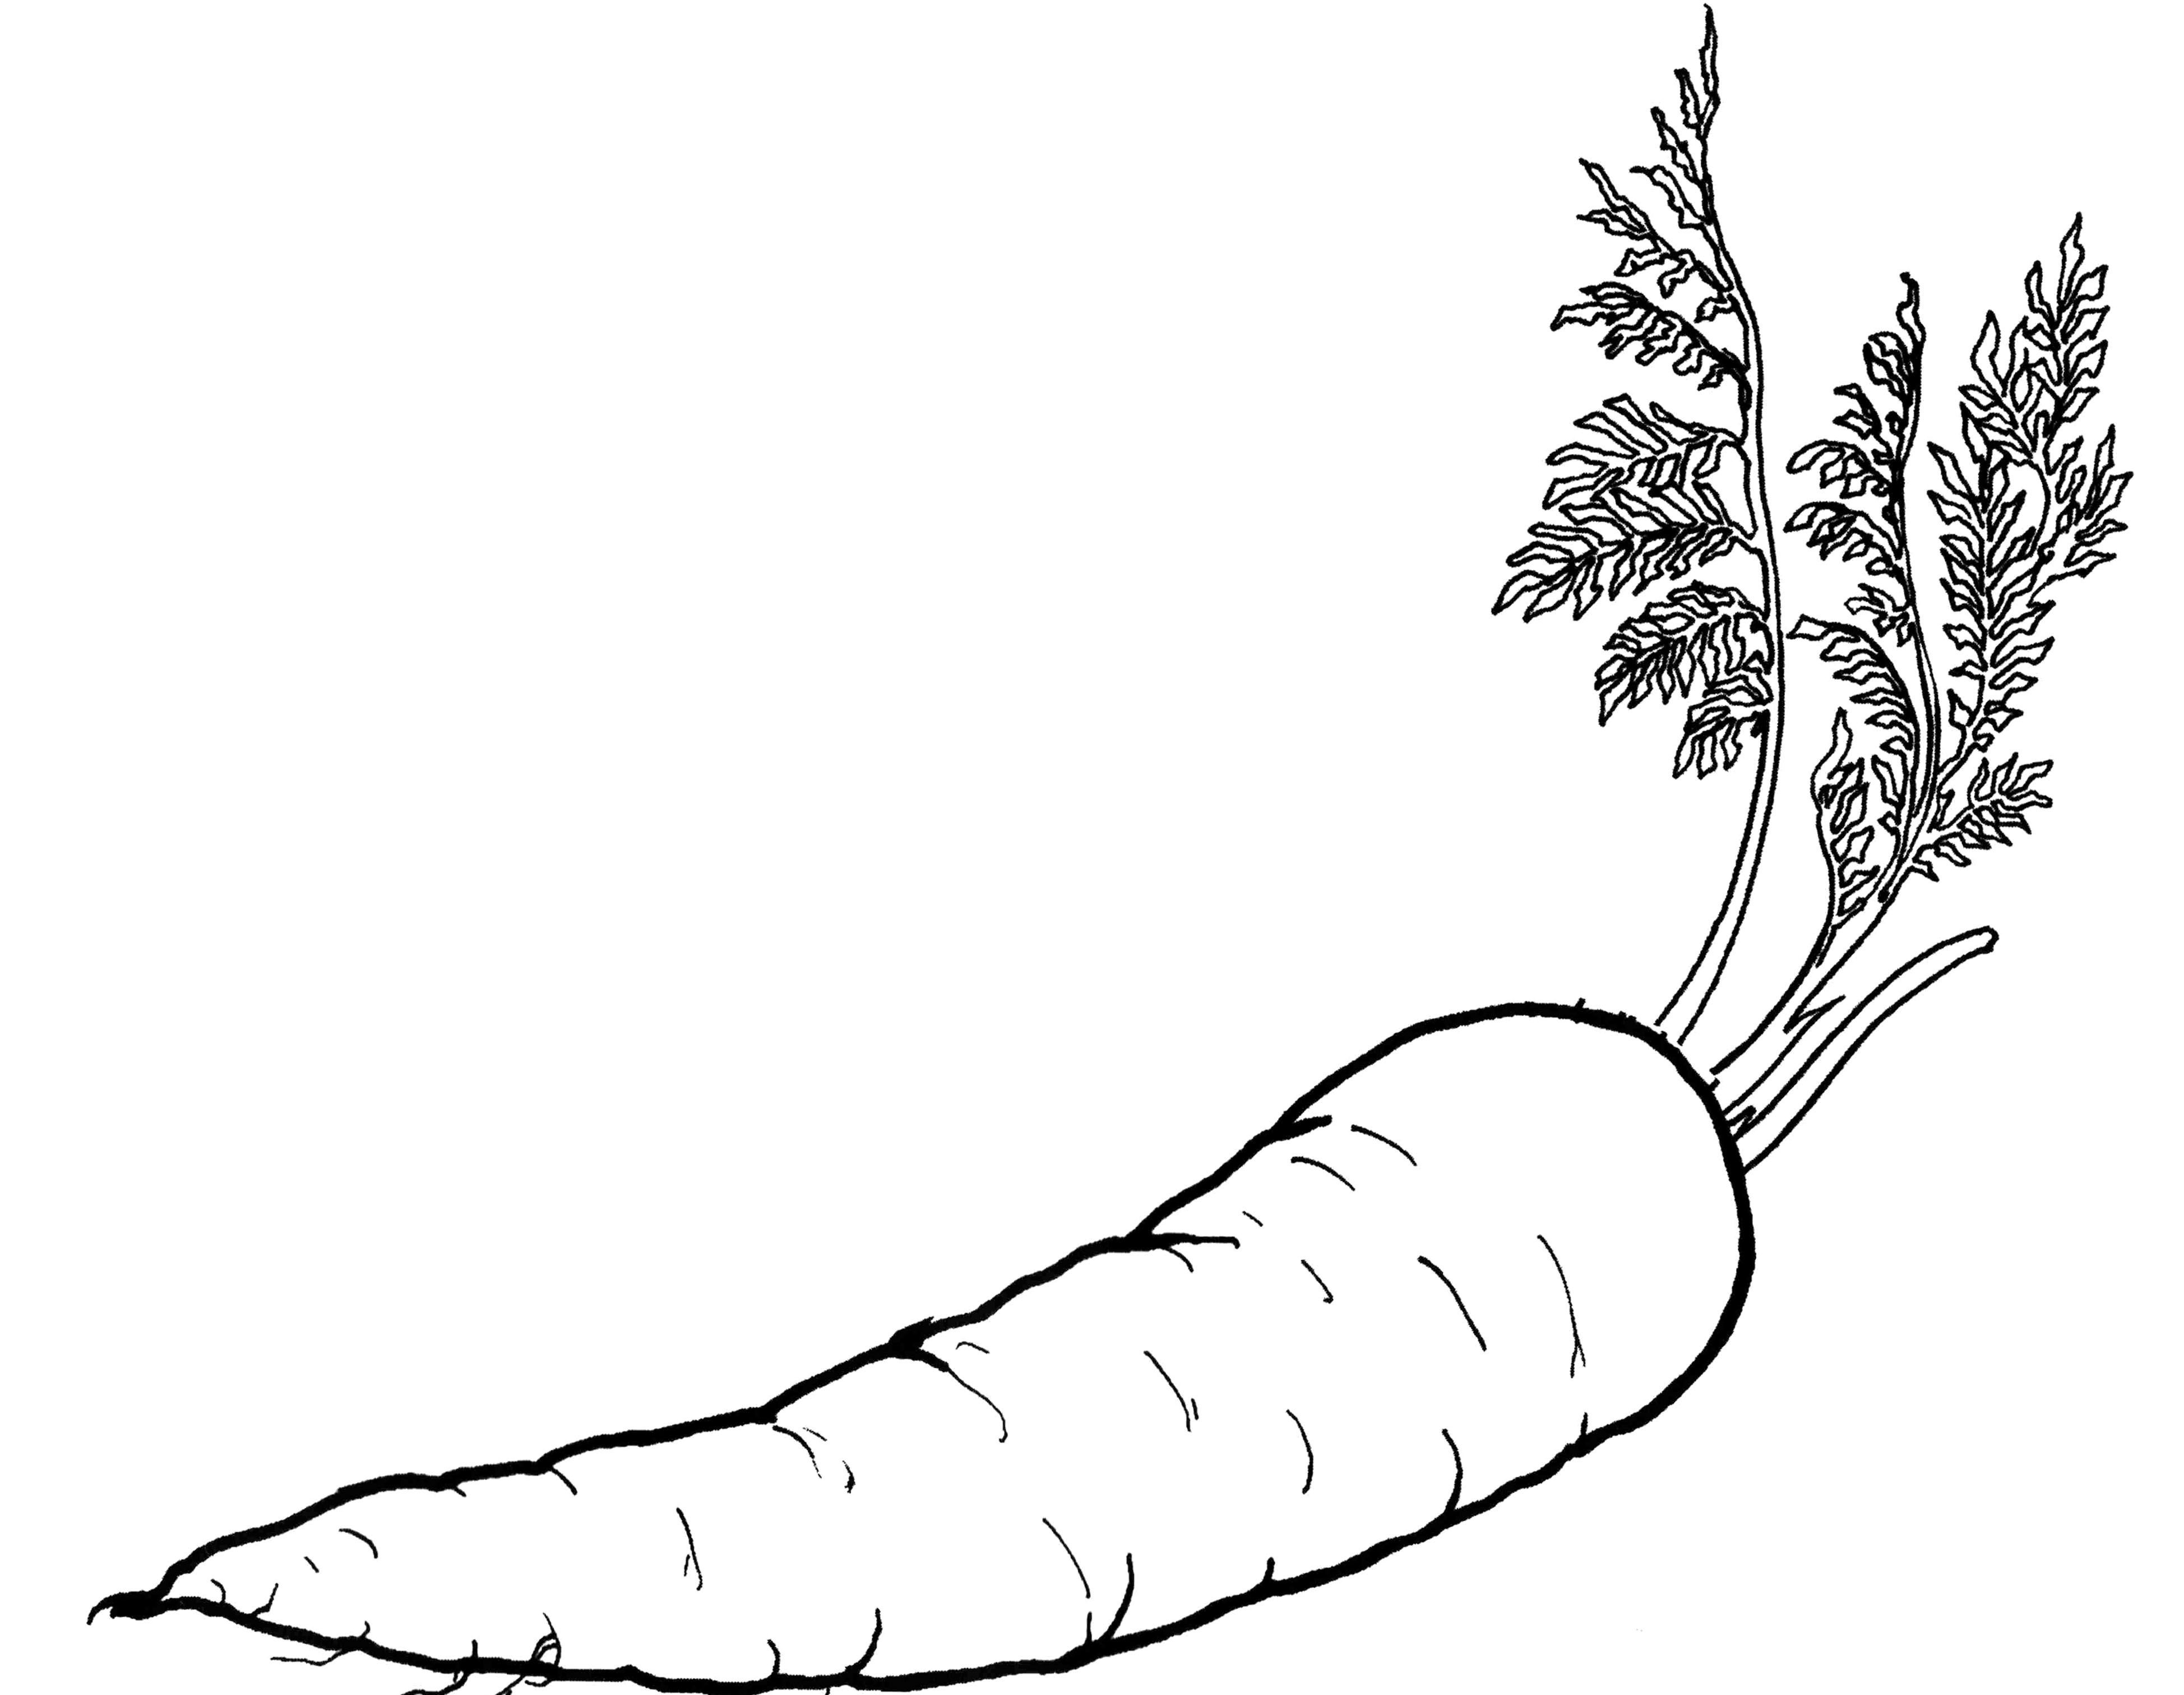 Vegetables Carrots Are Good For The Body Coloring For Kids Vegetable Coloring Pages Fruit Coloring Pages Food Coloring Pages